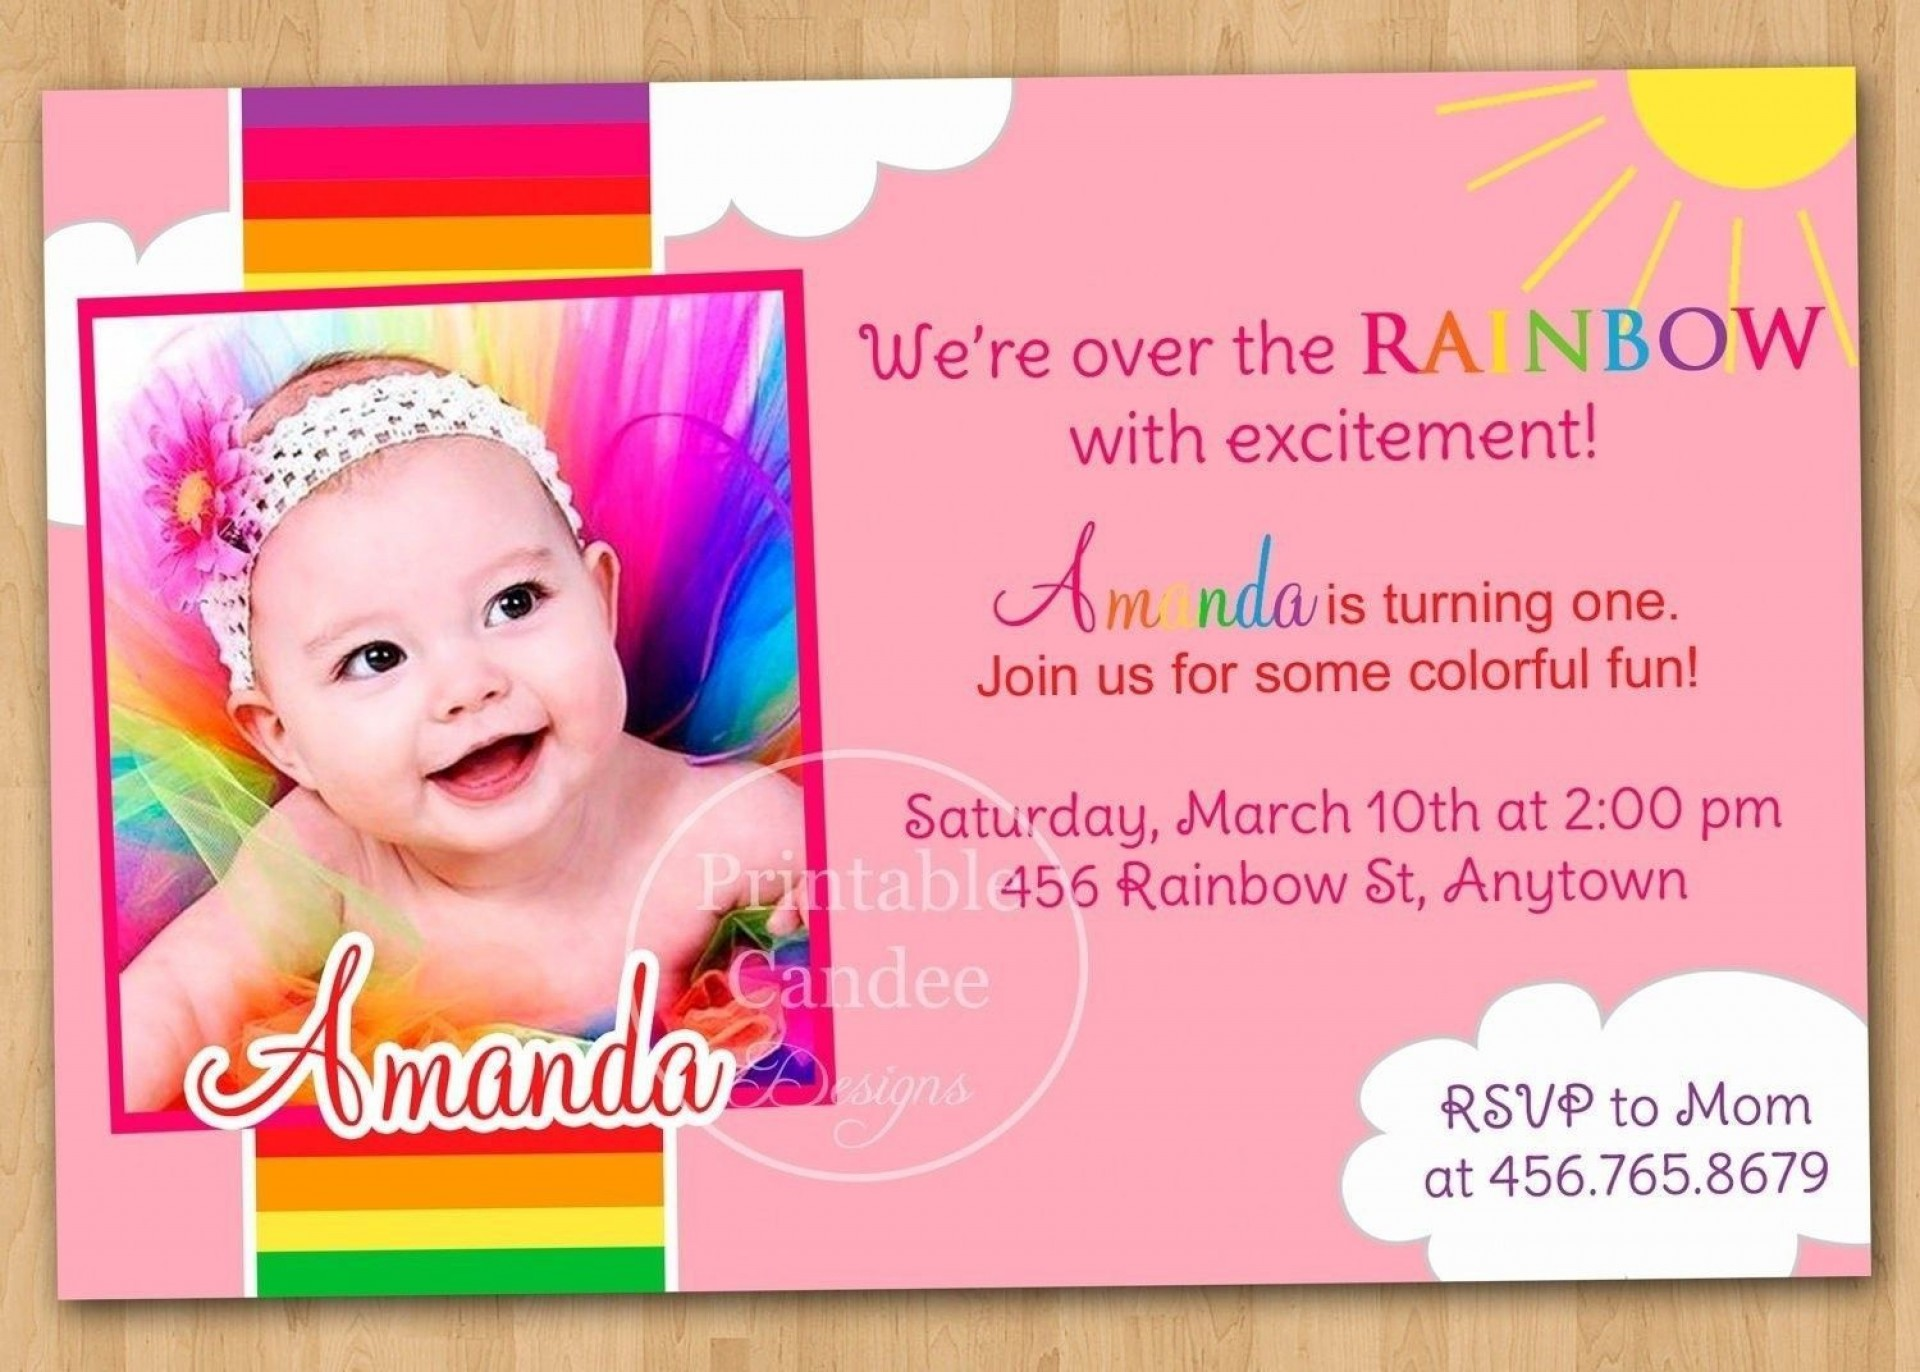 003 Exceptional Free Online 1st Birthday Invitation Card Maker For Twin Highest Clarity 1920